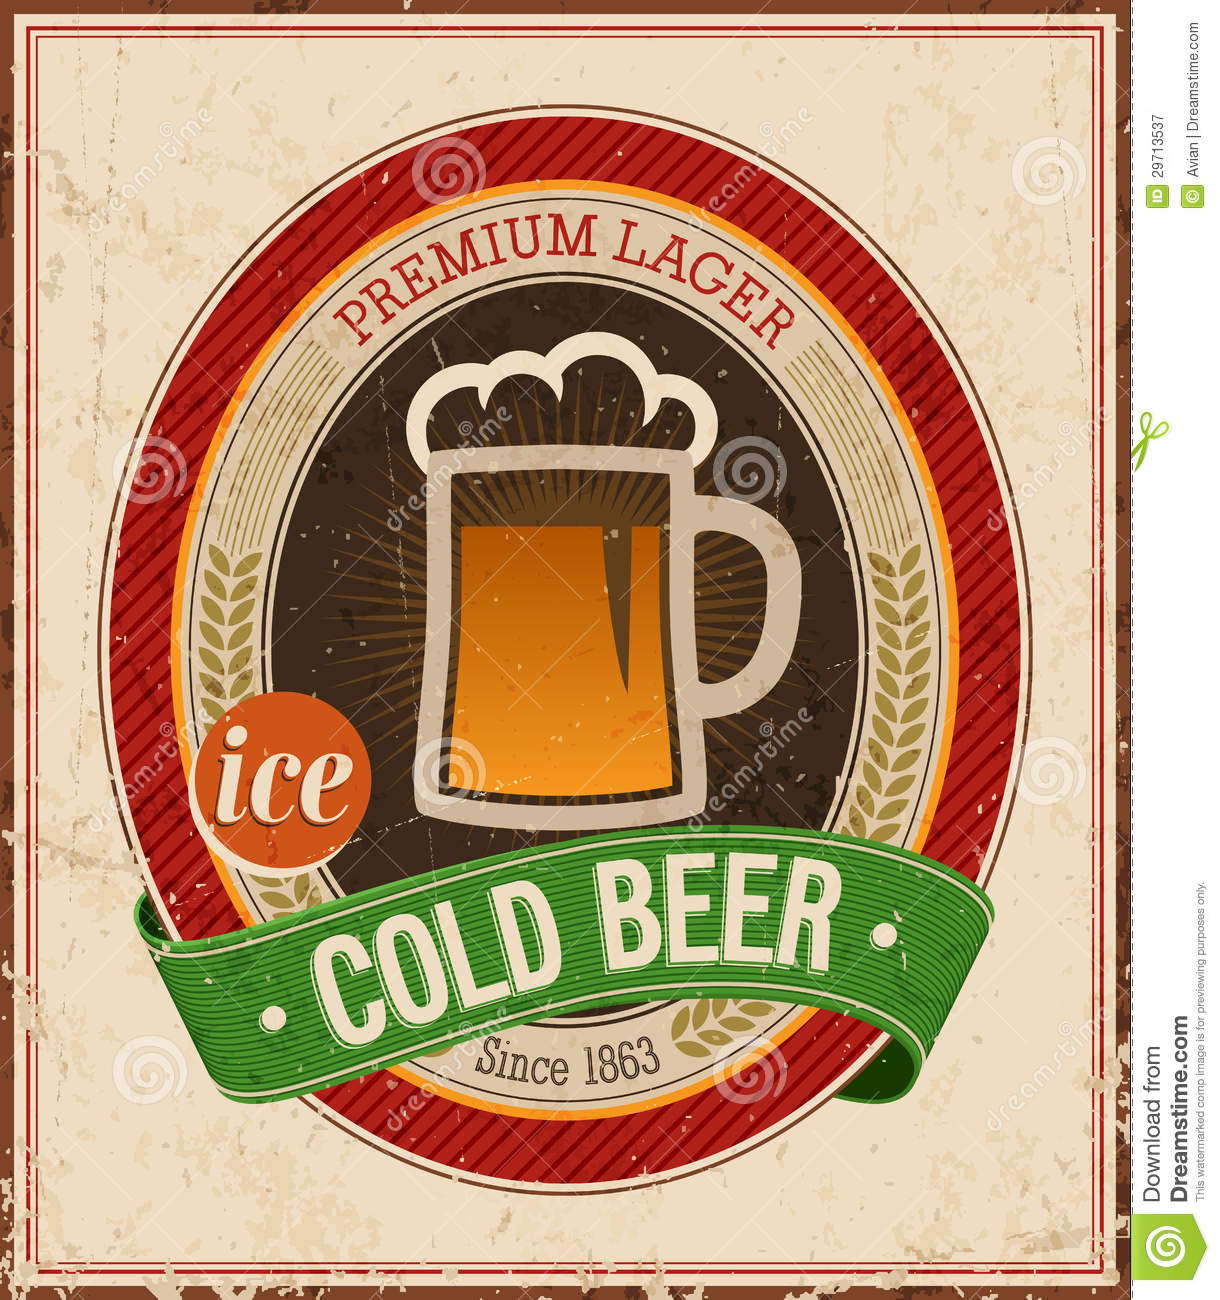 Vintage Brick Wallpaper 3d Vintage Cold Beer Poster Royalty Free Stock Photography